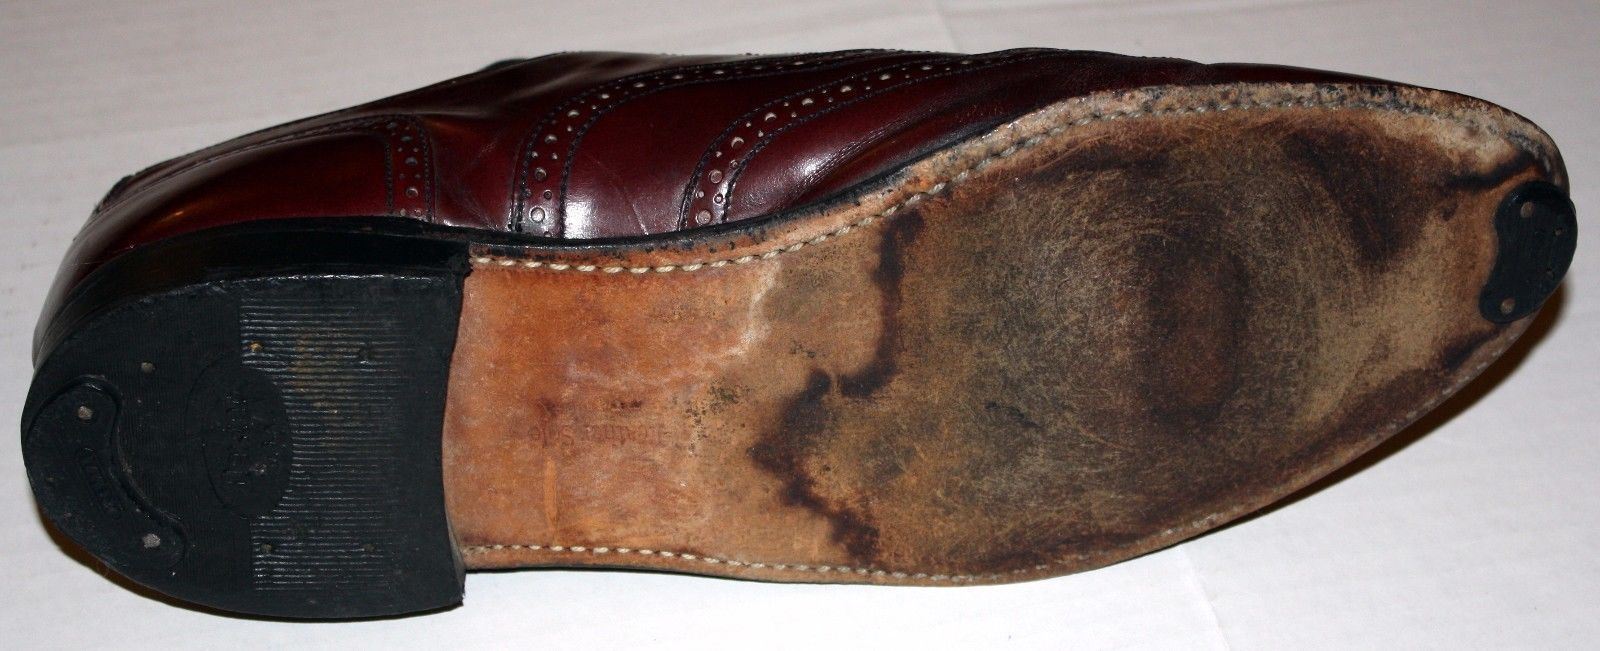 Vintage Dexter Leather Reddish Brown Mahogany Size 11 Brogue Wingtip Shoes USA